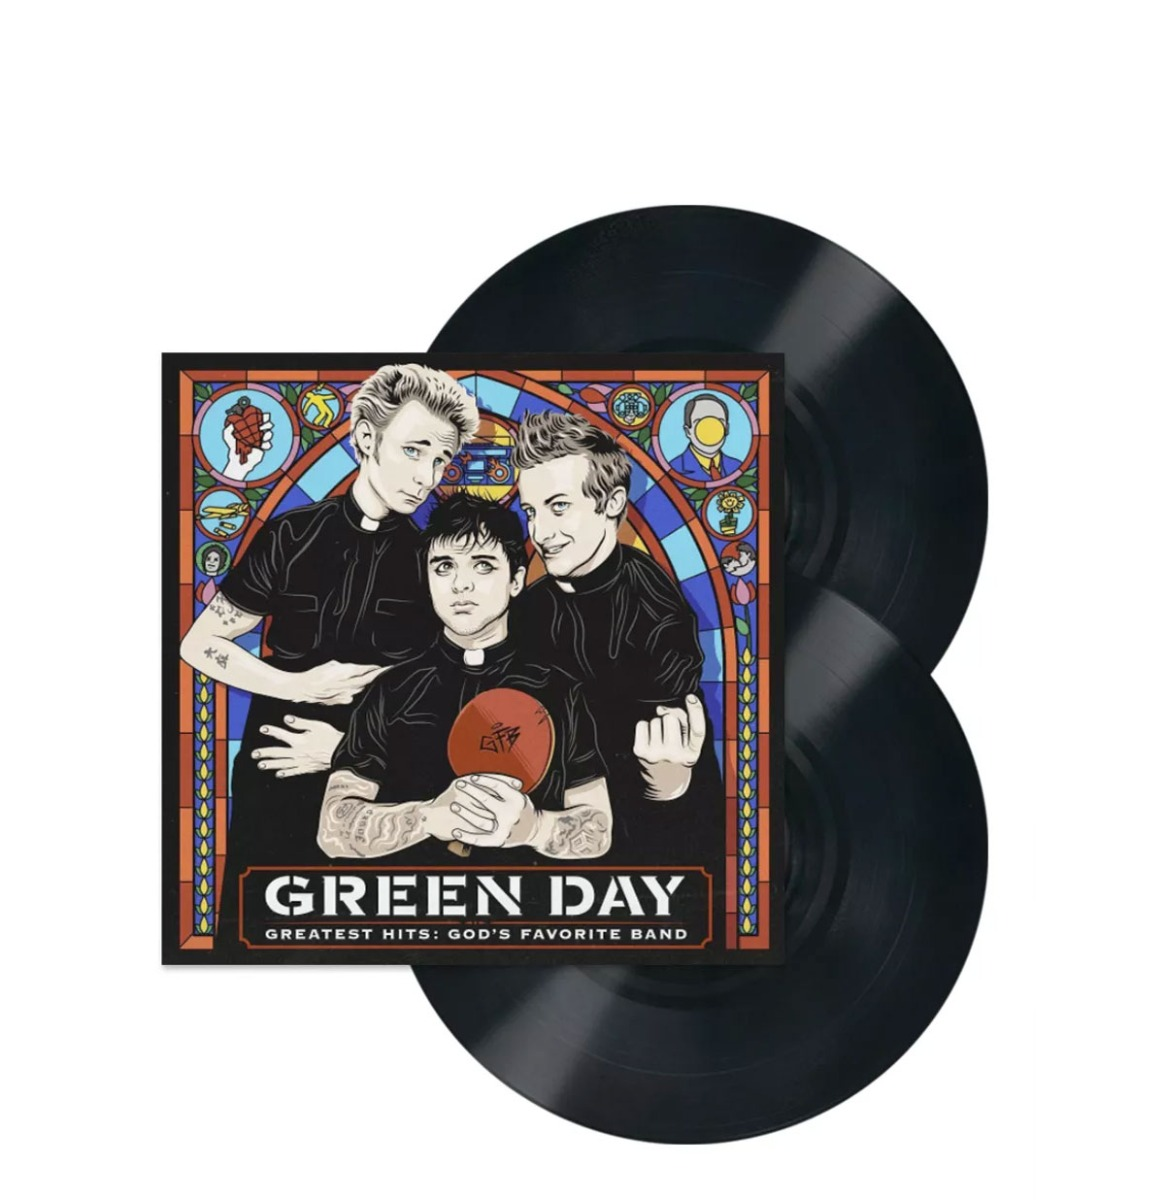 Green Day - Greatest Hits: God's Favorite Band 2 LP